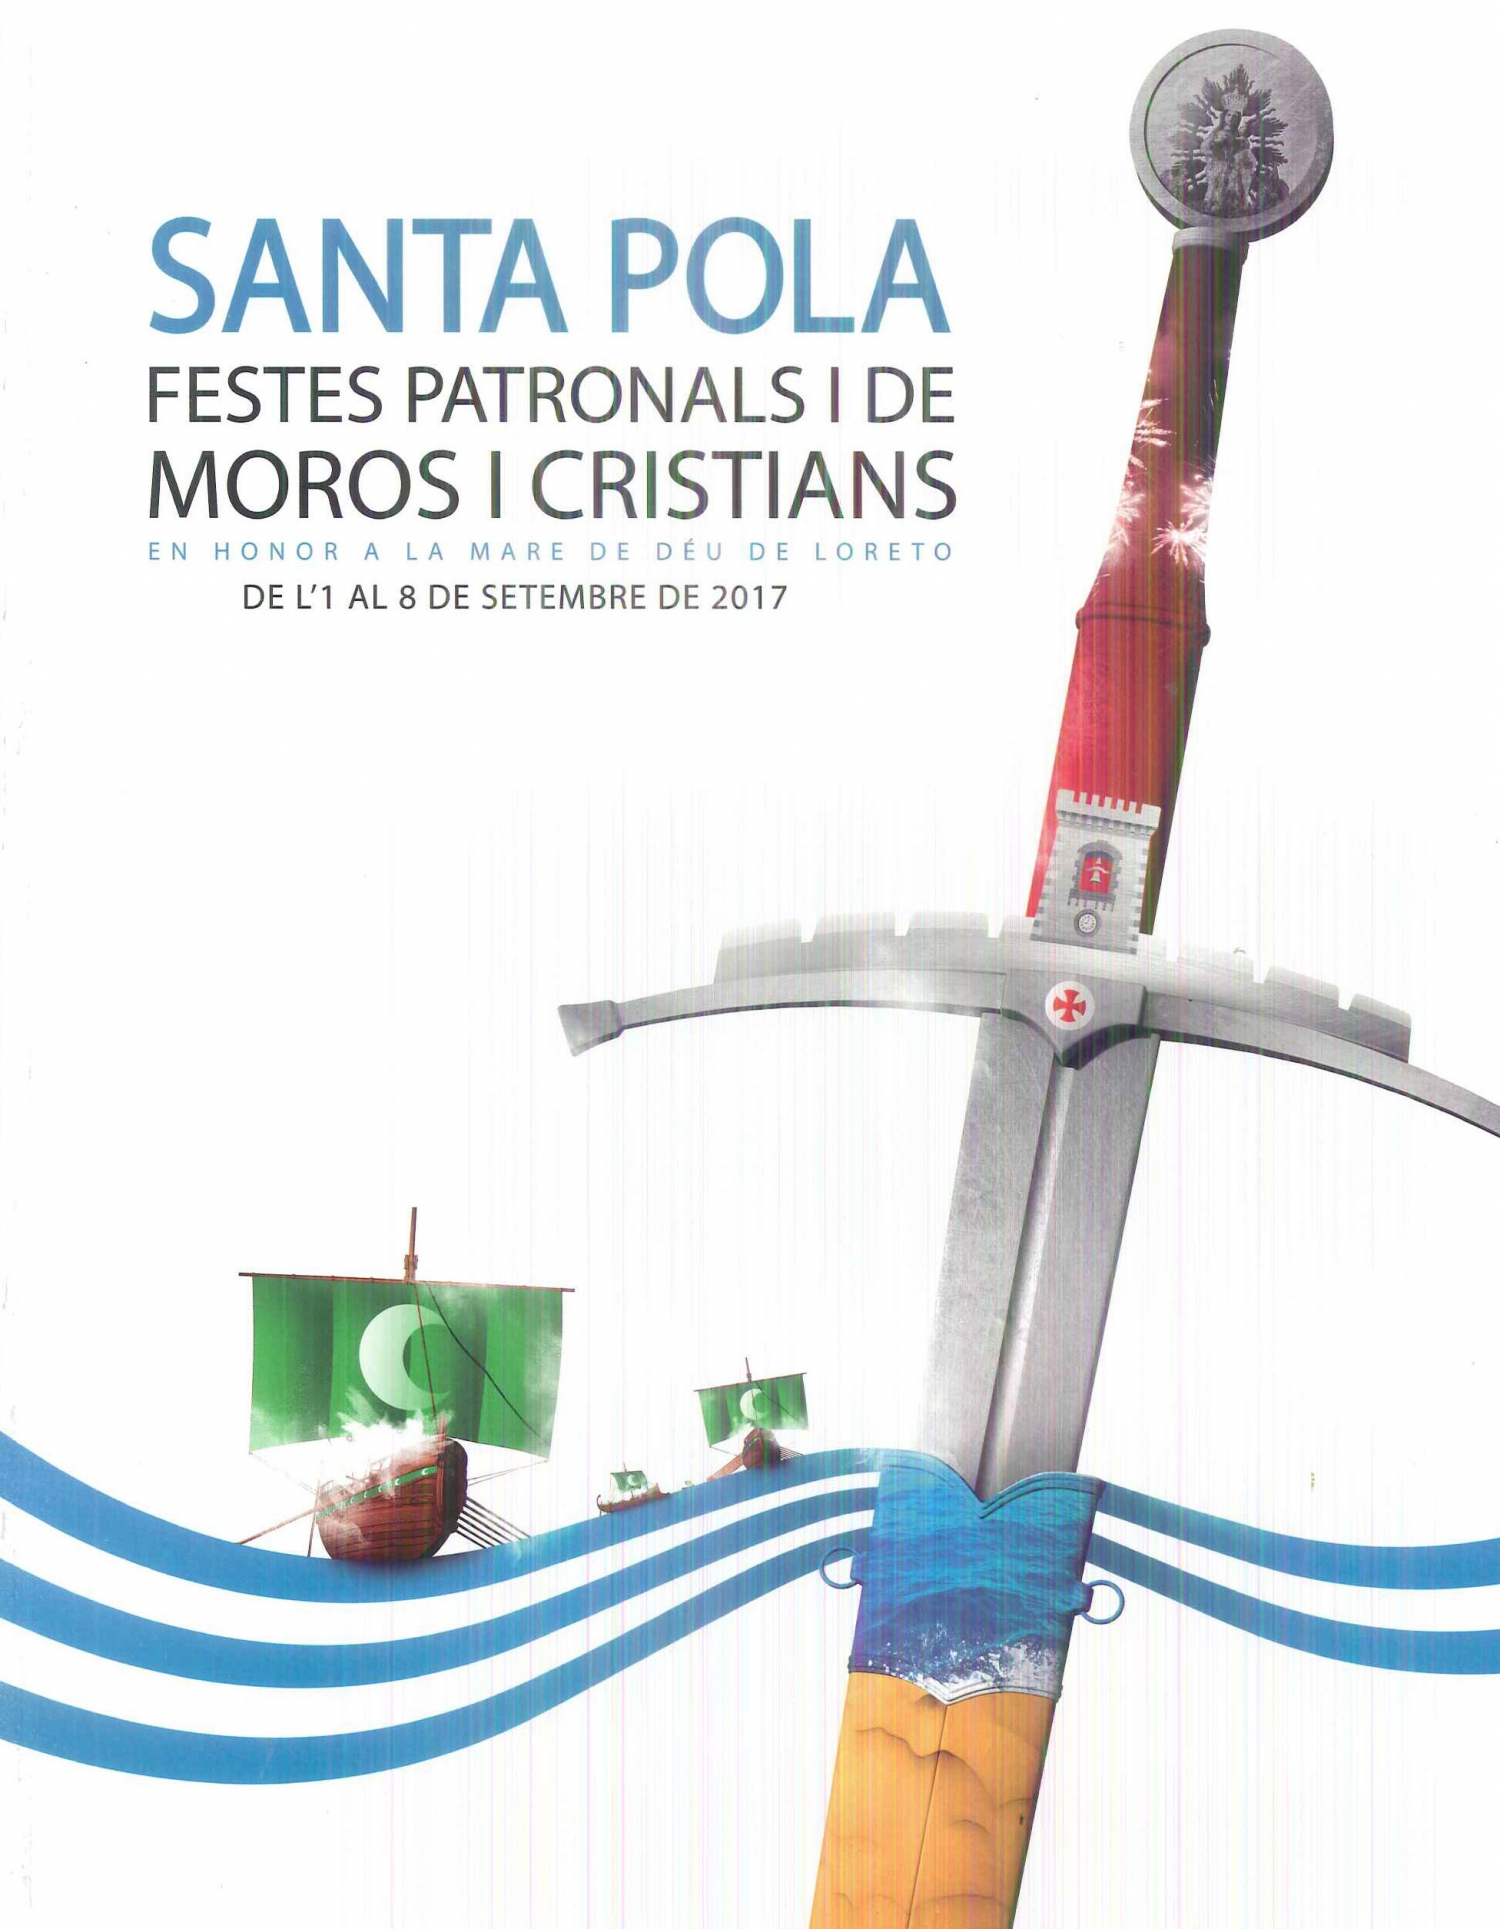 Moors and Christians in Santa Pola